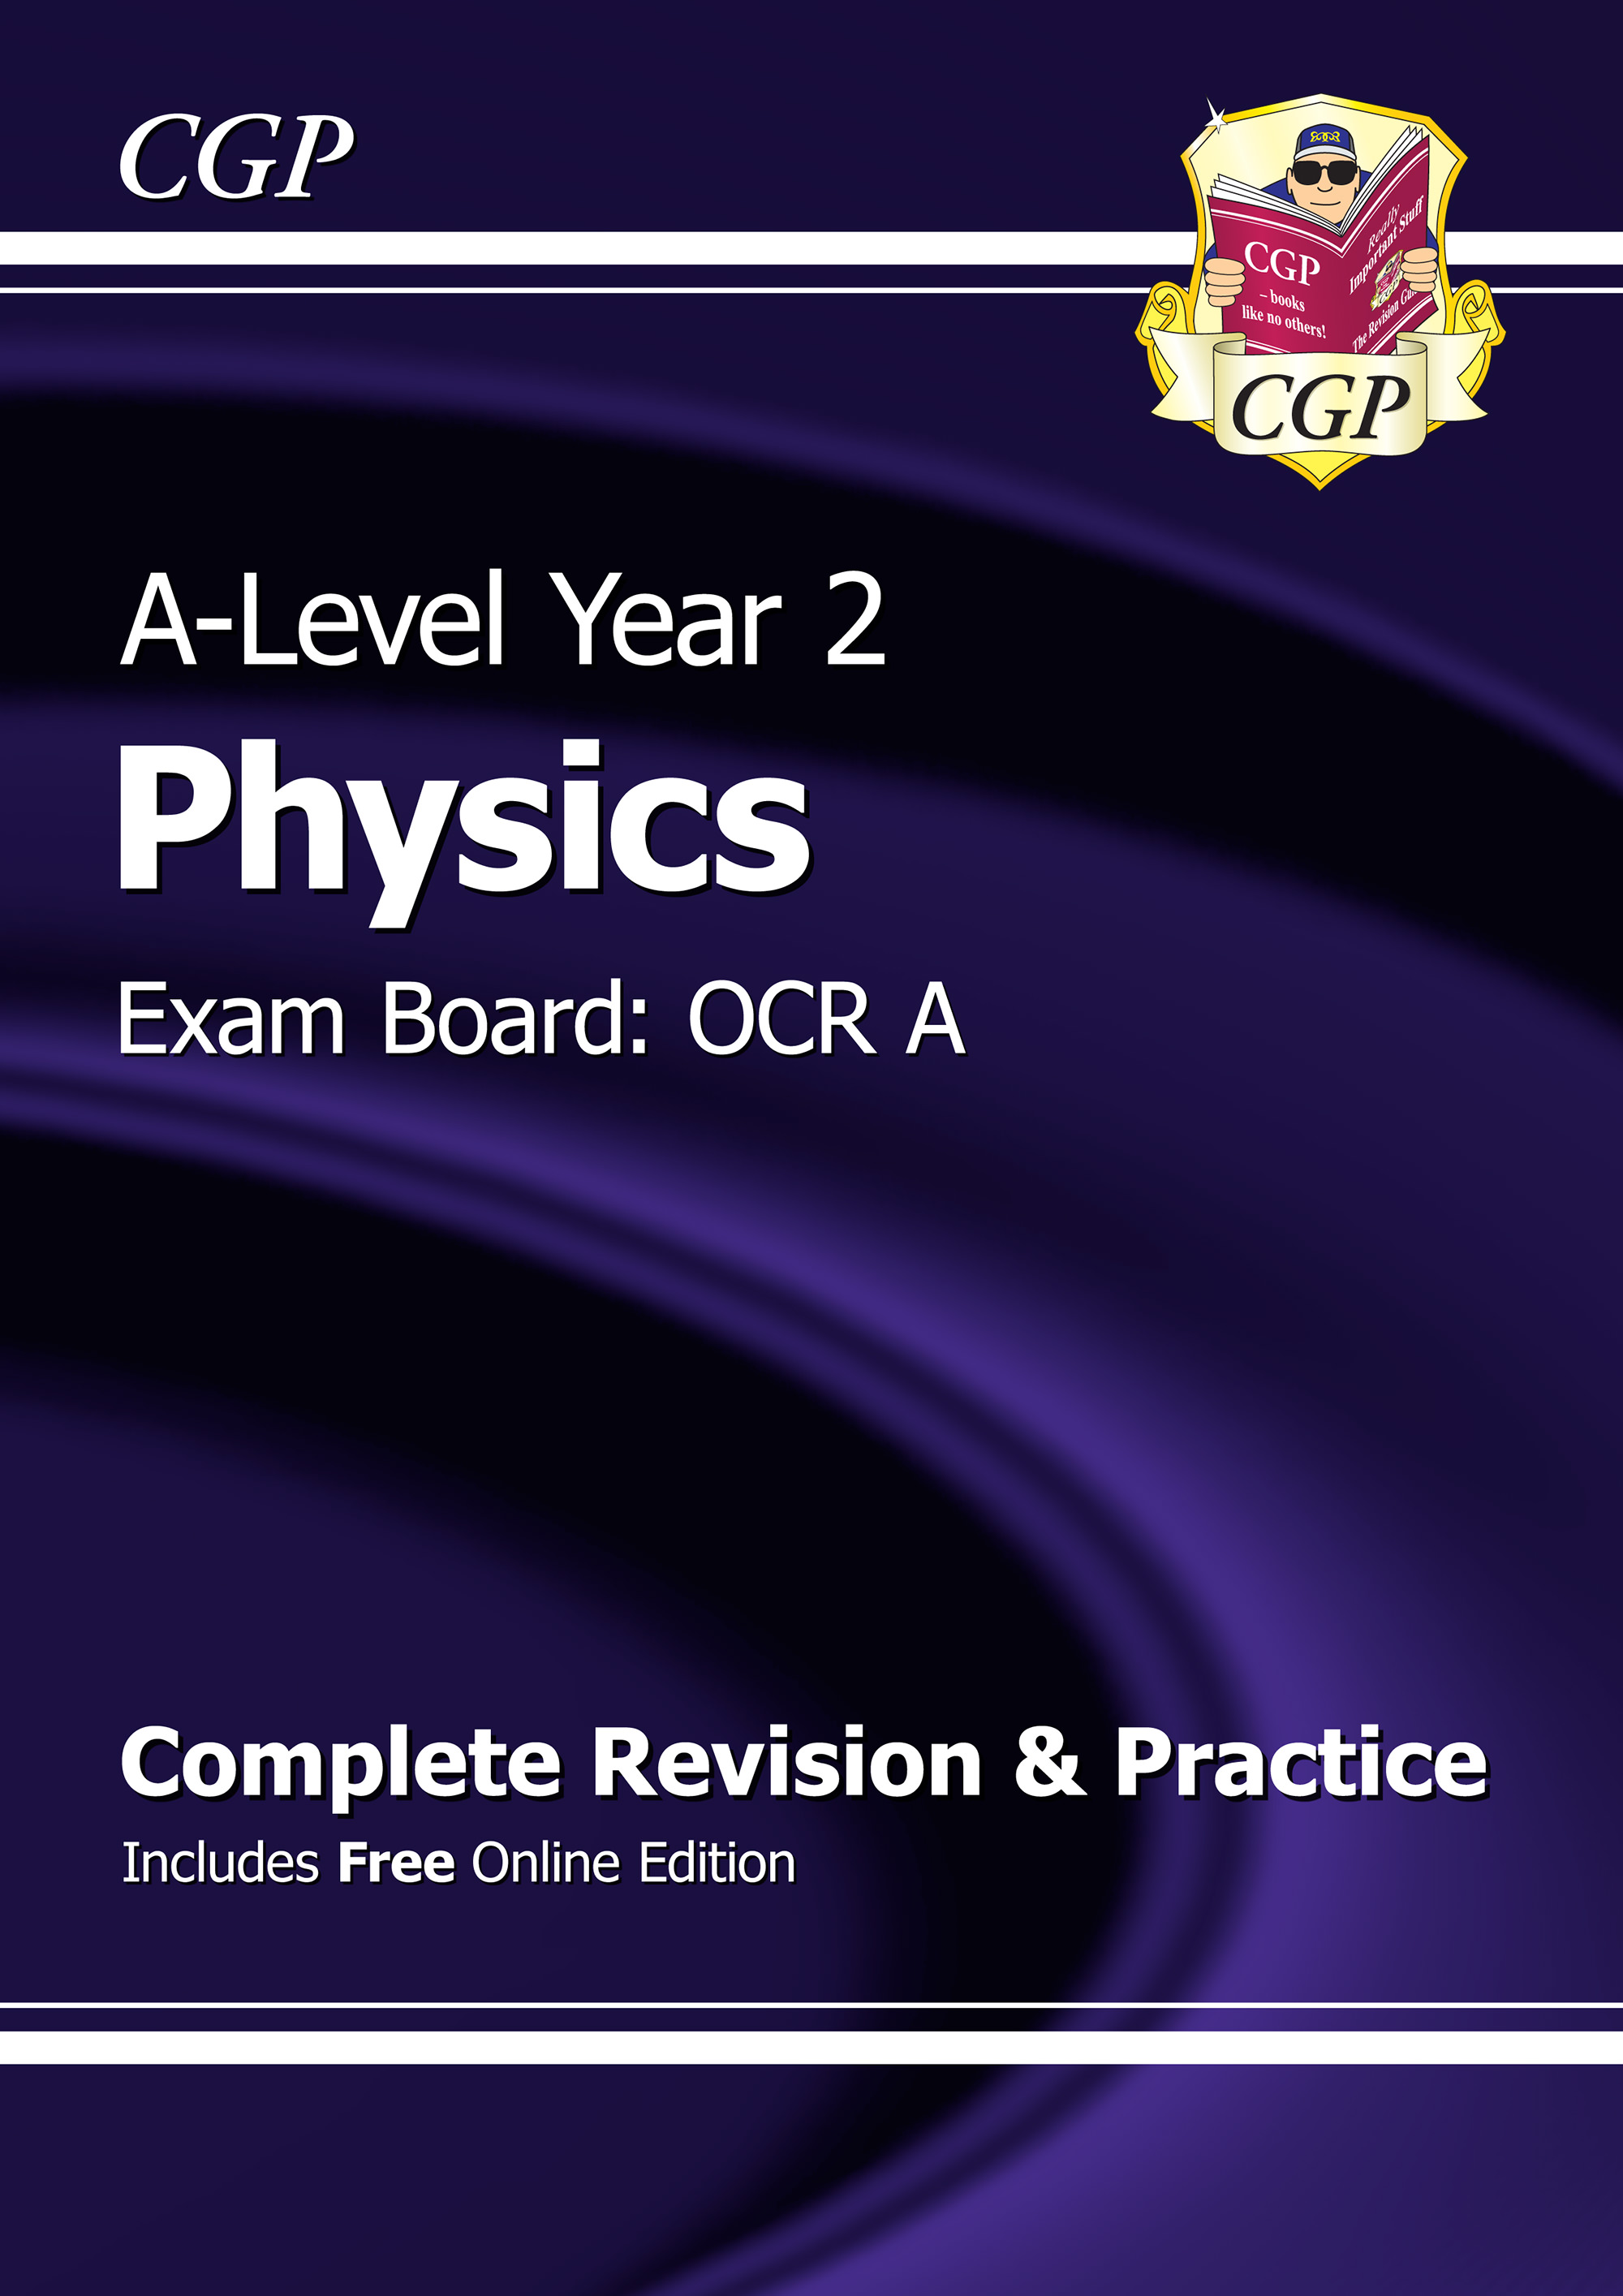 PRAR62 - A-Level Physics: OCR A Year 2 Complete Revision & Practice with Online Edition